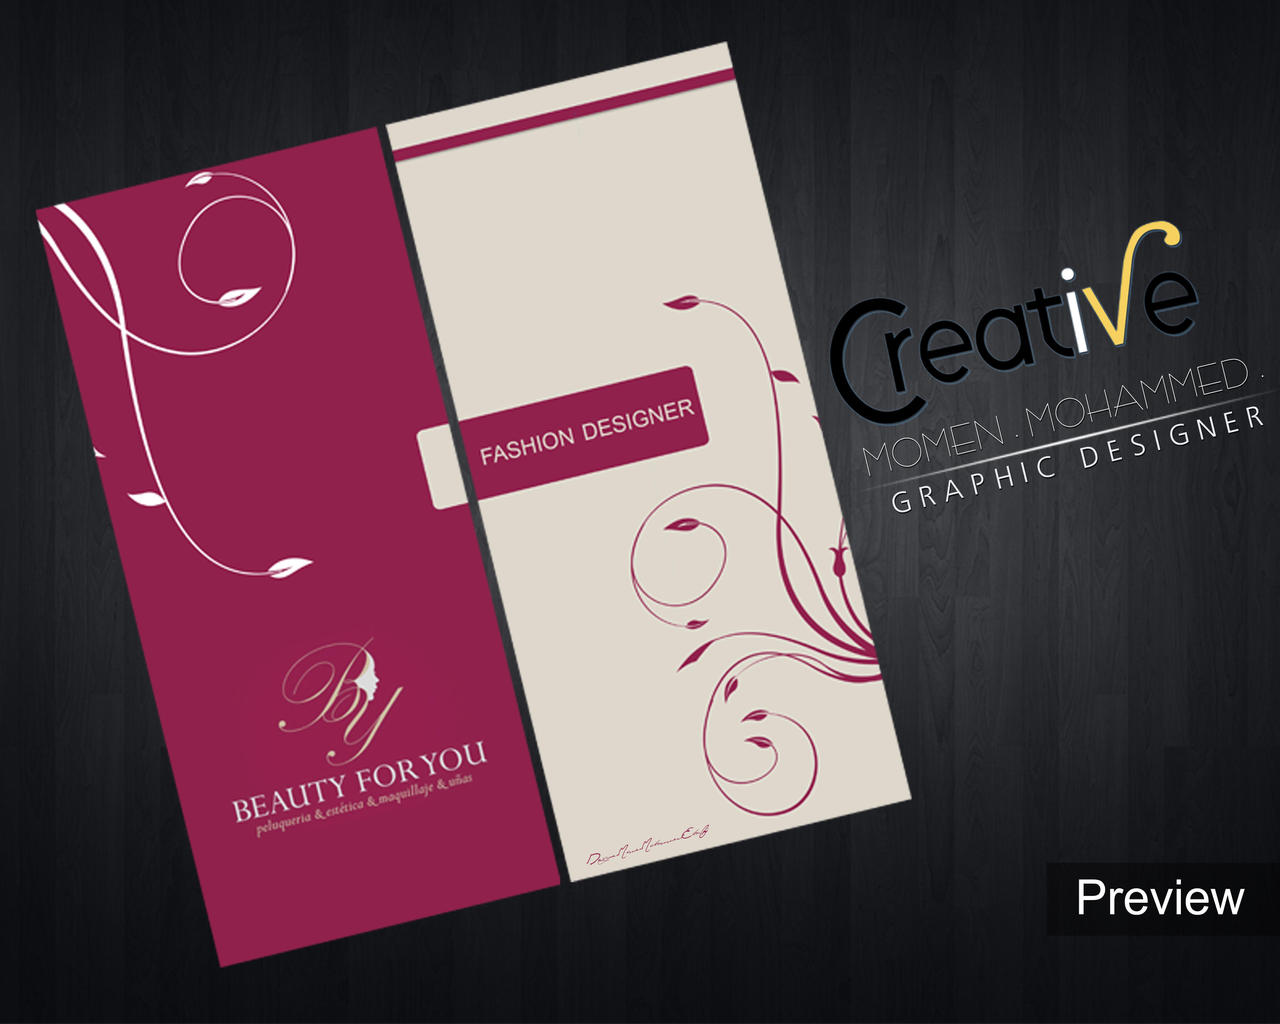 Brochure design a new fashion company by MOMENMOHAMMED